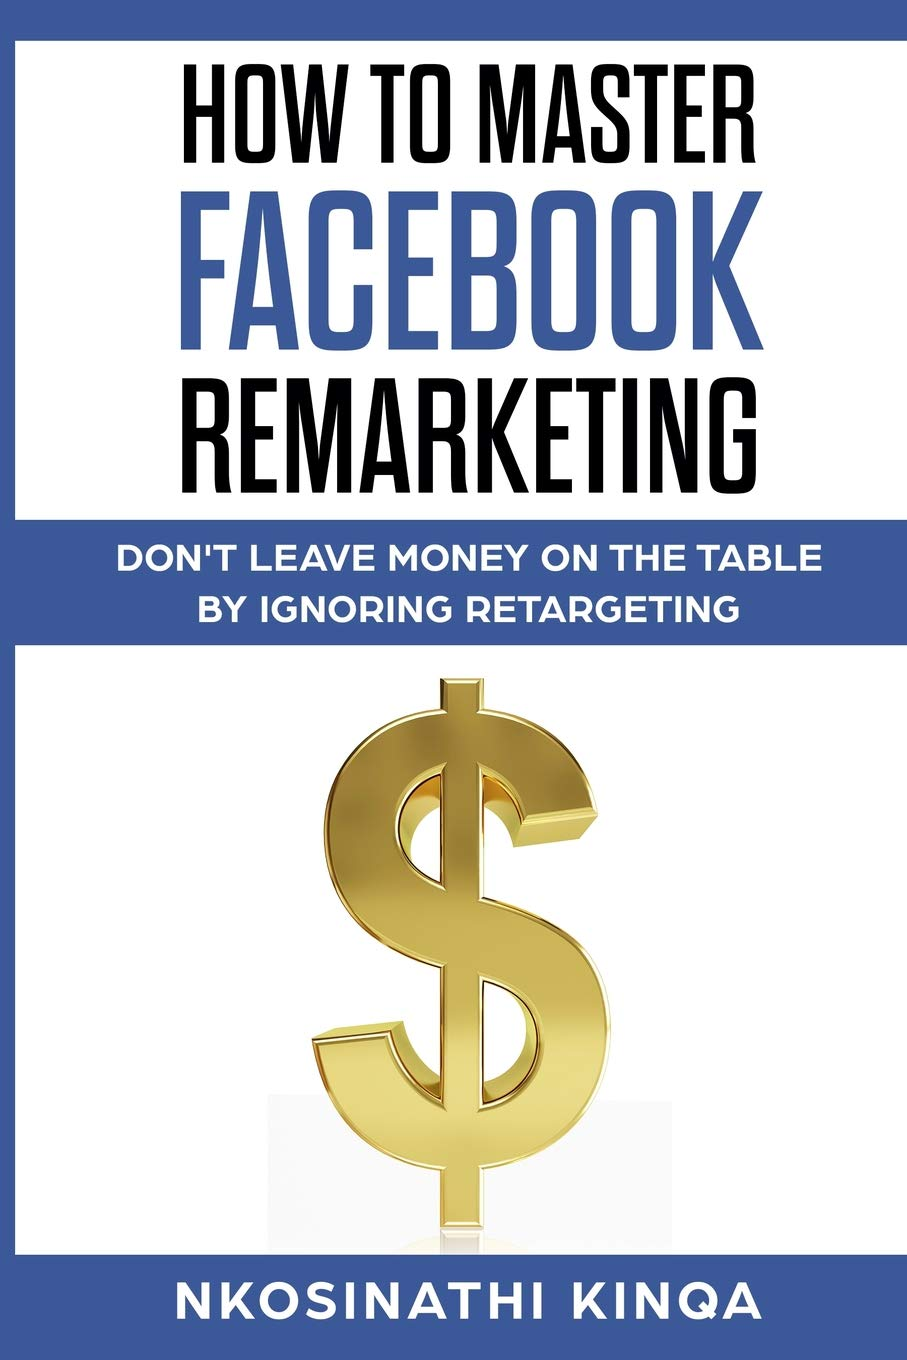 61ATOLAbnSL - How to Master Facebook Remarketing: Don't Leave Money on the Table by Ignoring Retargeting (Thorndike Nonfiction)